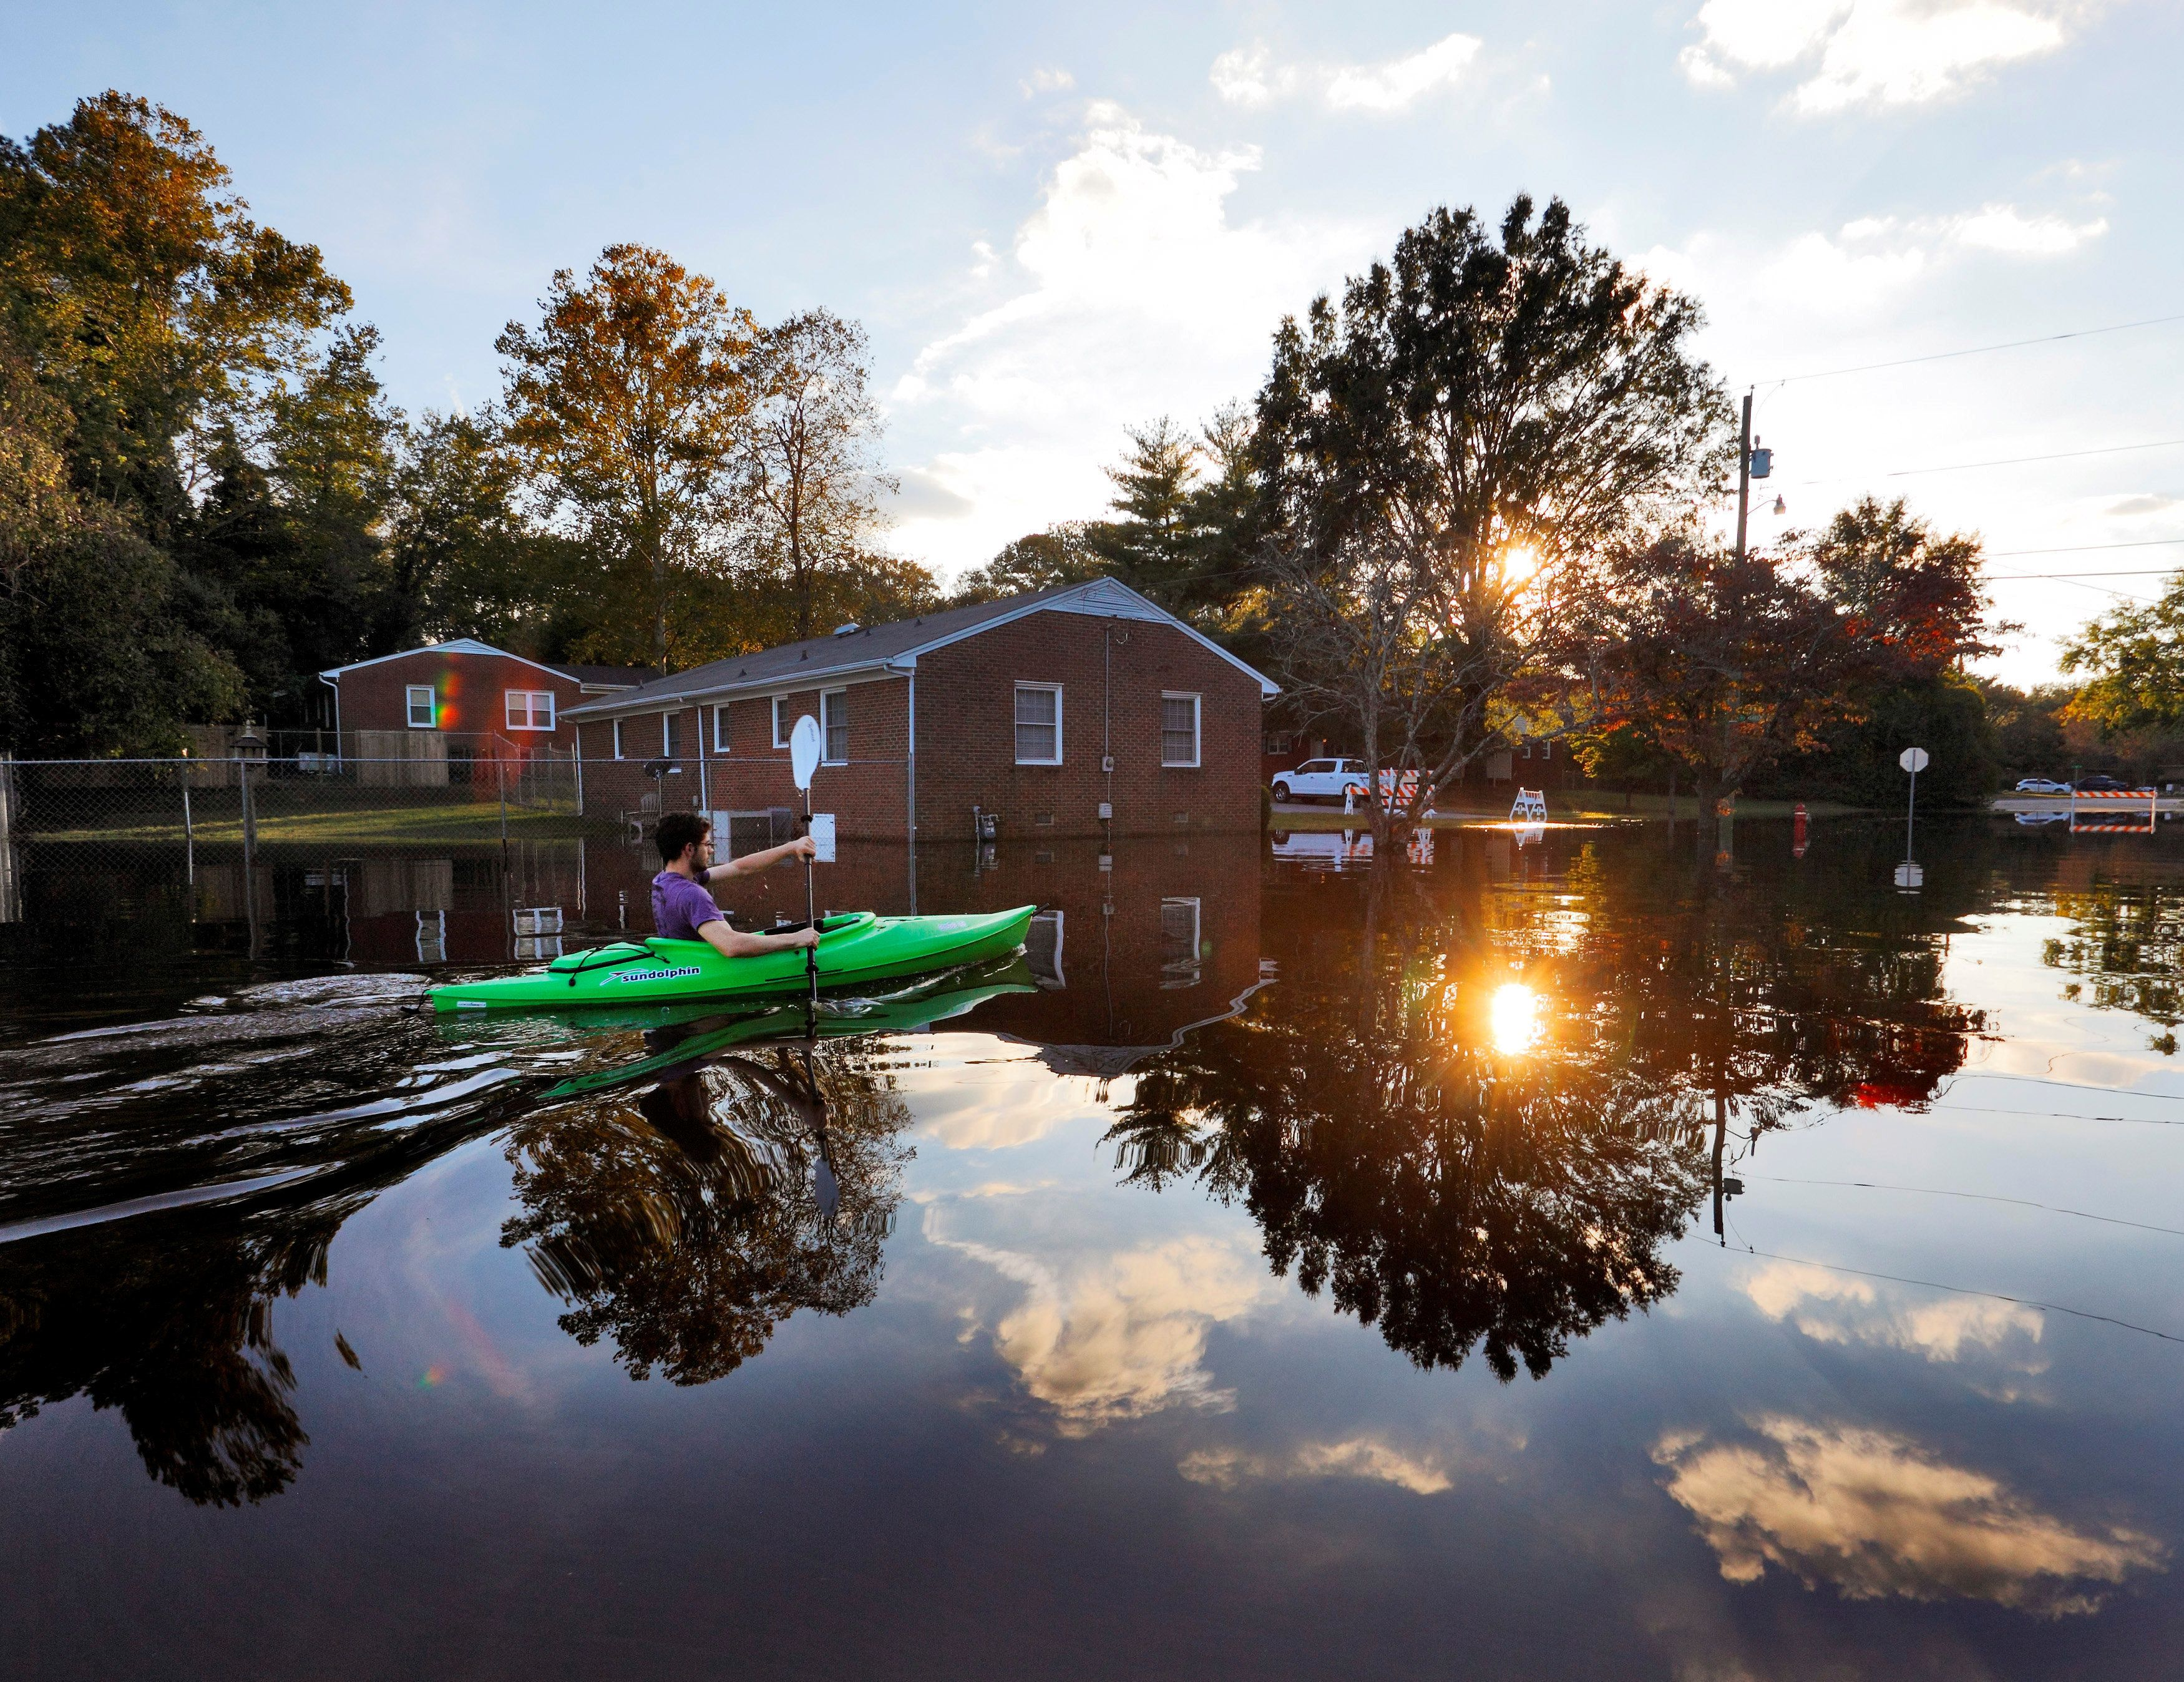 A manpaddles his kayak in the aftermath of Hurricane Matthew -- an extreme weather event -- in Greenville, North Caroli